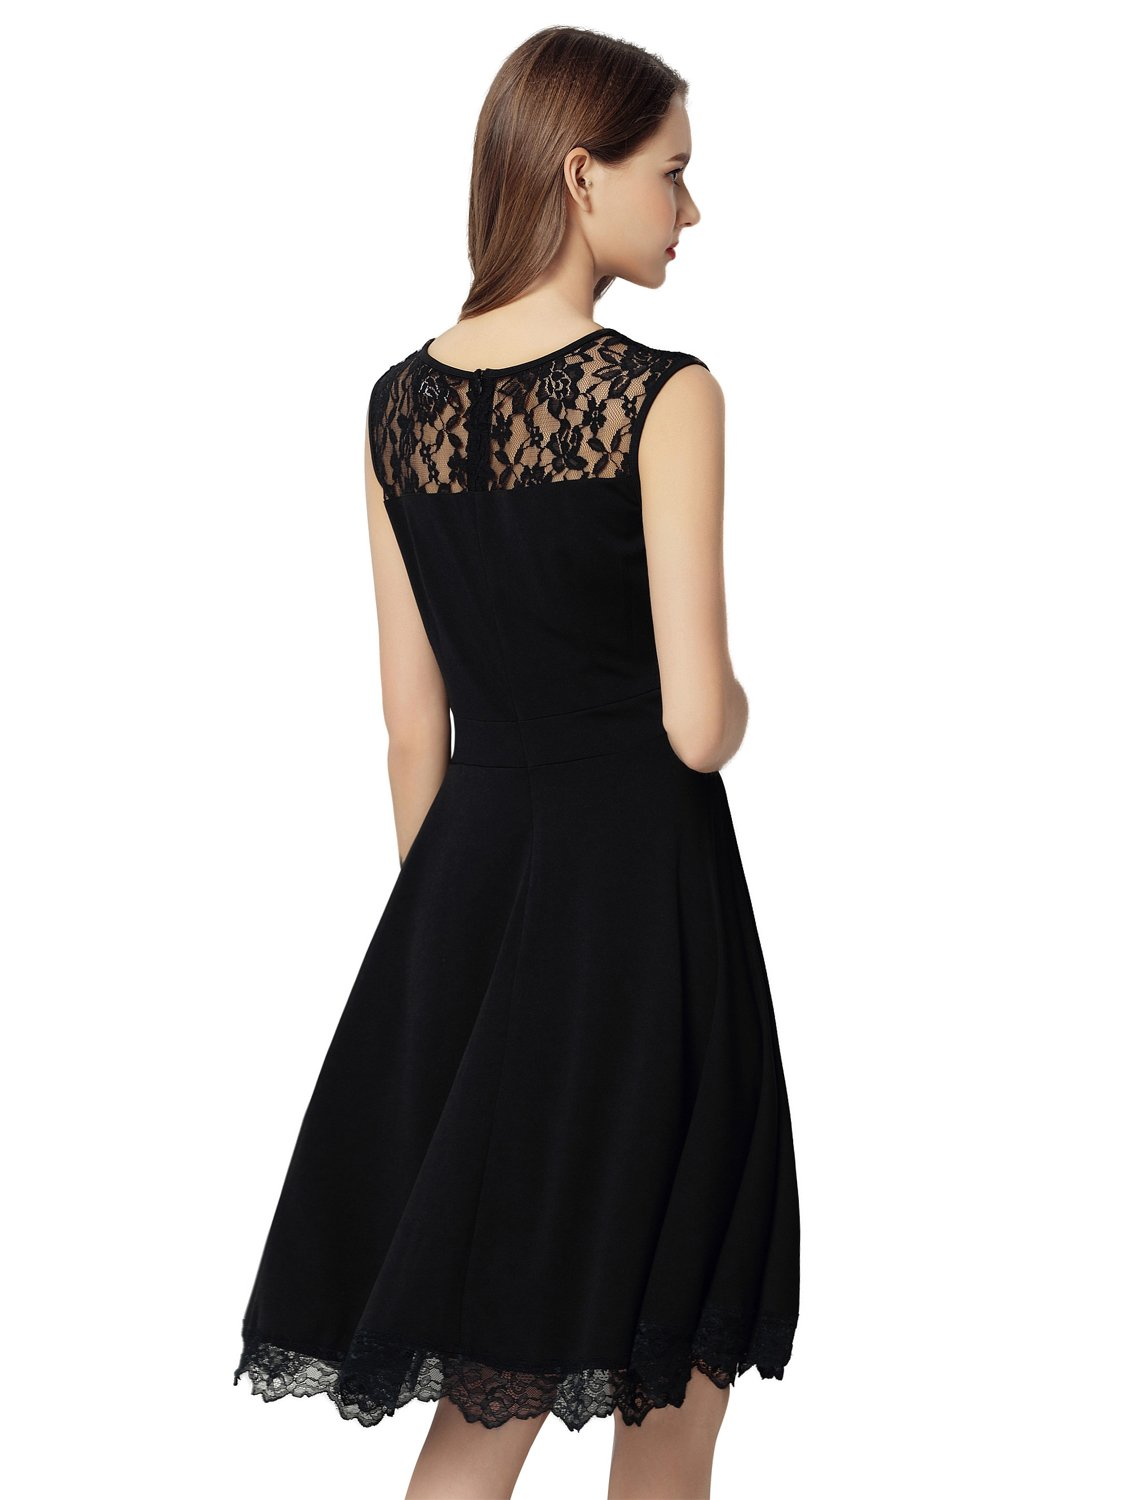 Dresms Women Sleeveless Lace Floral Elegant Cocktail Dress Crew Neck Knee Length (Black, Small) by Dresms (Image #2)